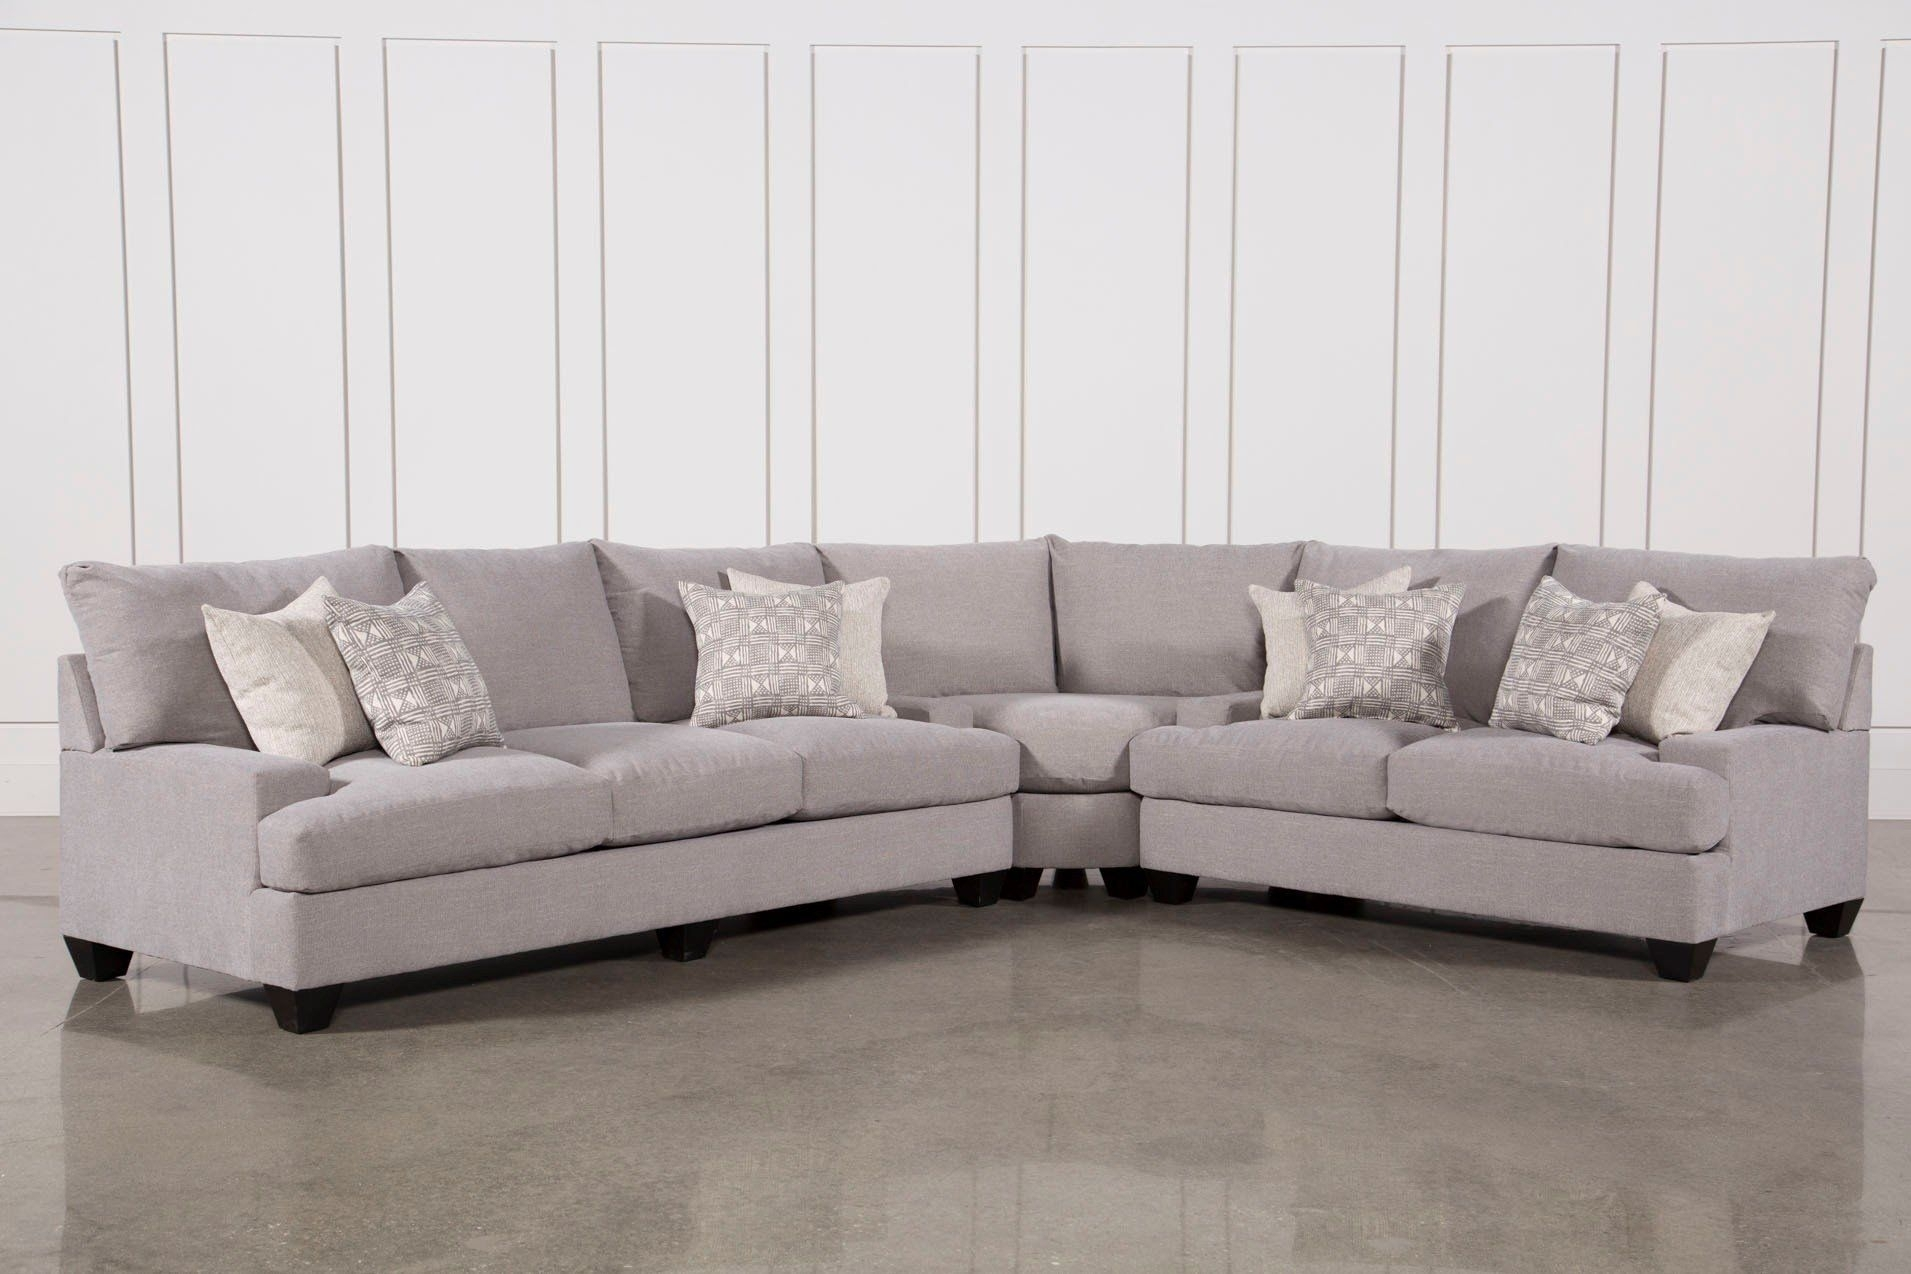 Harper Down 3 Piece Sectional | Livingroom Media | Pinterest pertaining to Adeline 3 Piece Sectionals (Image 15 of 30)